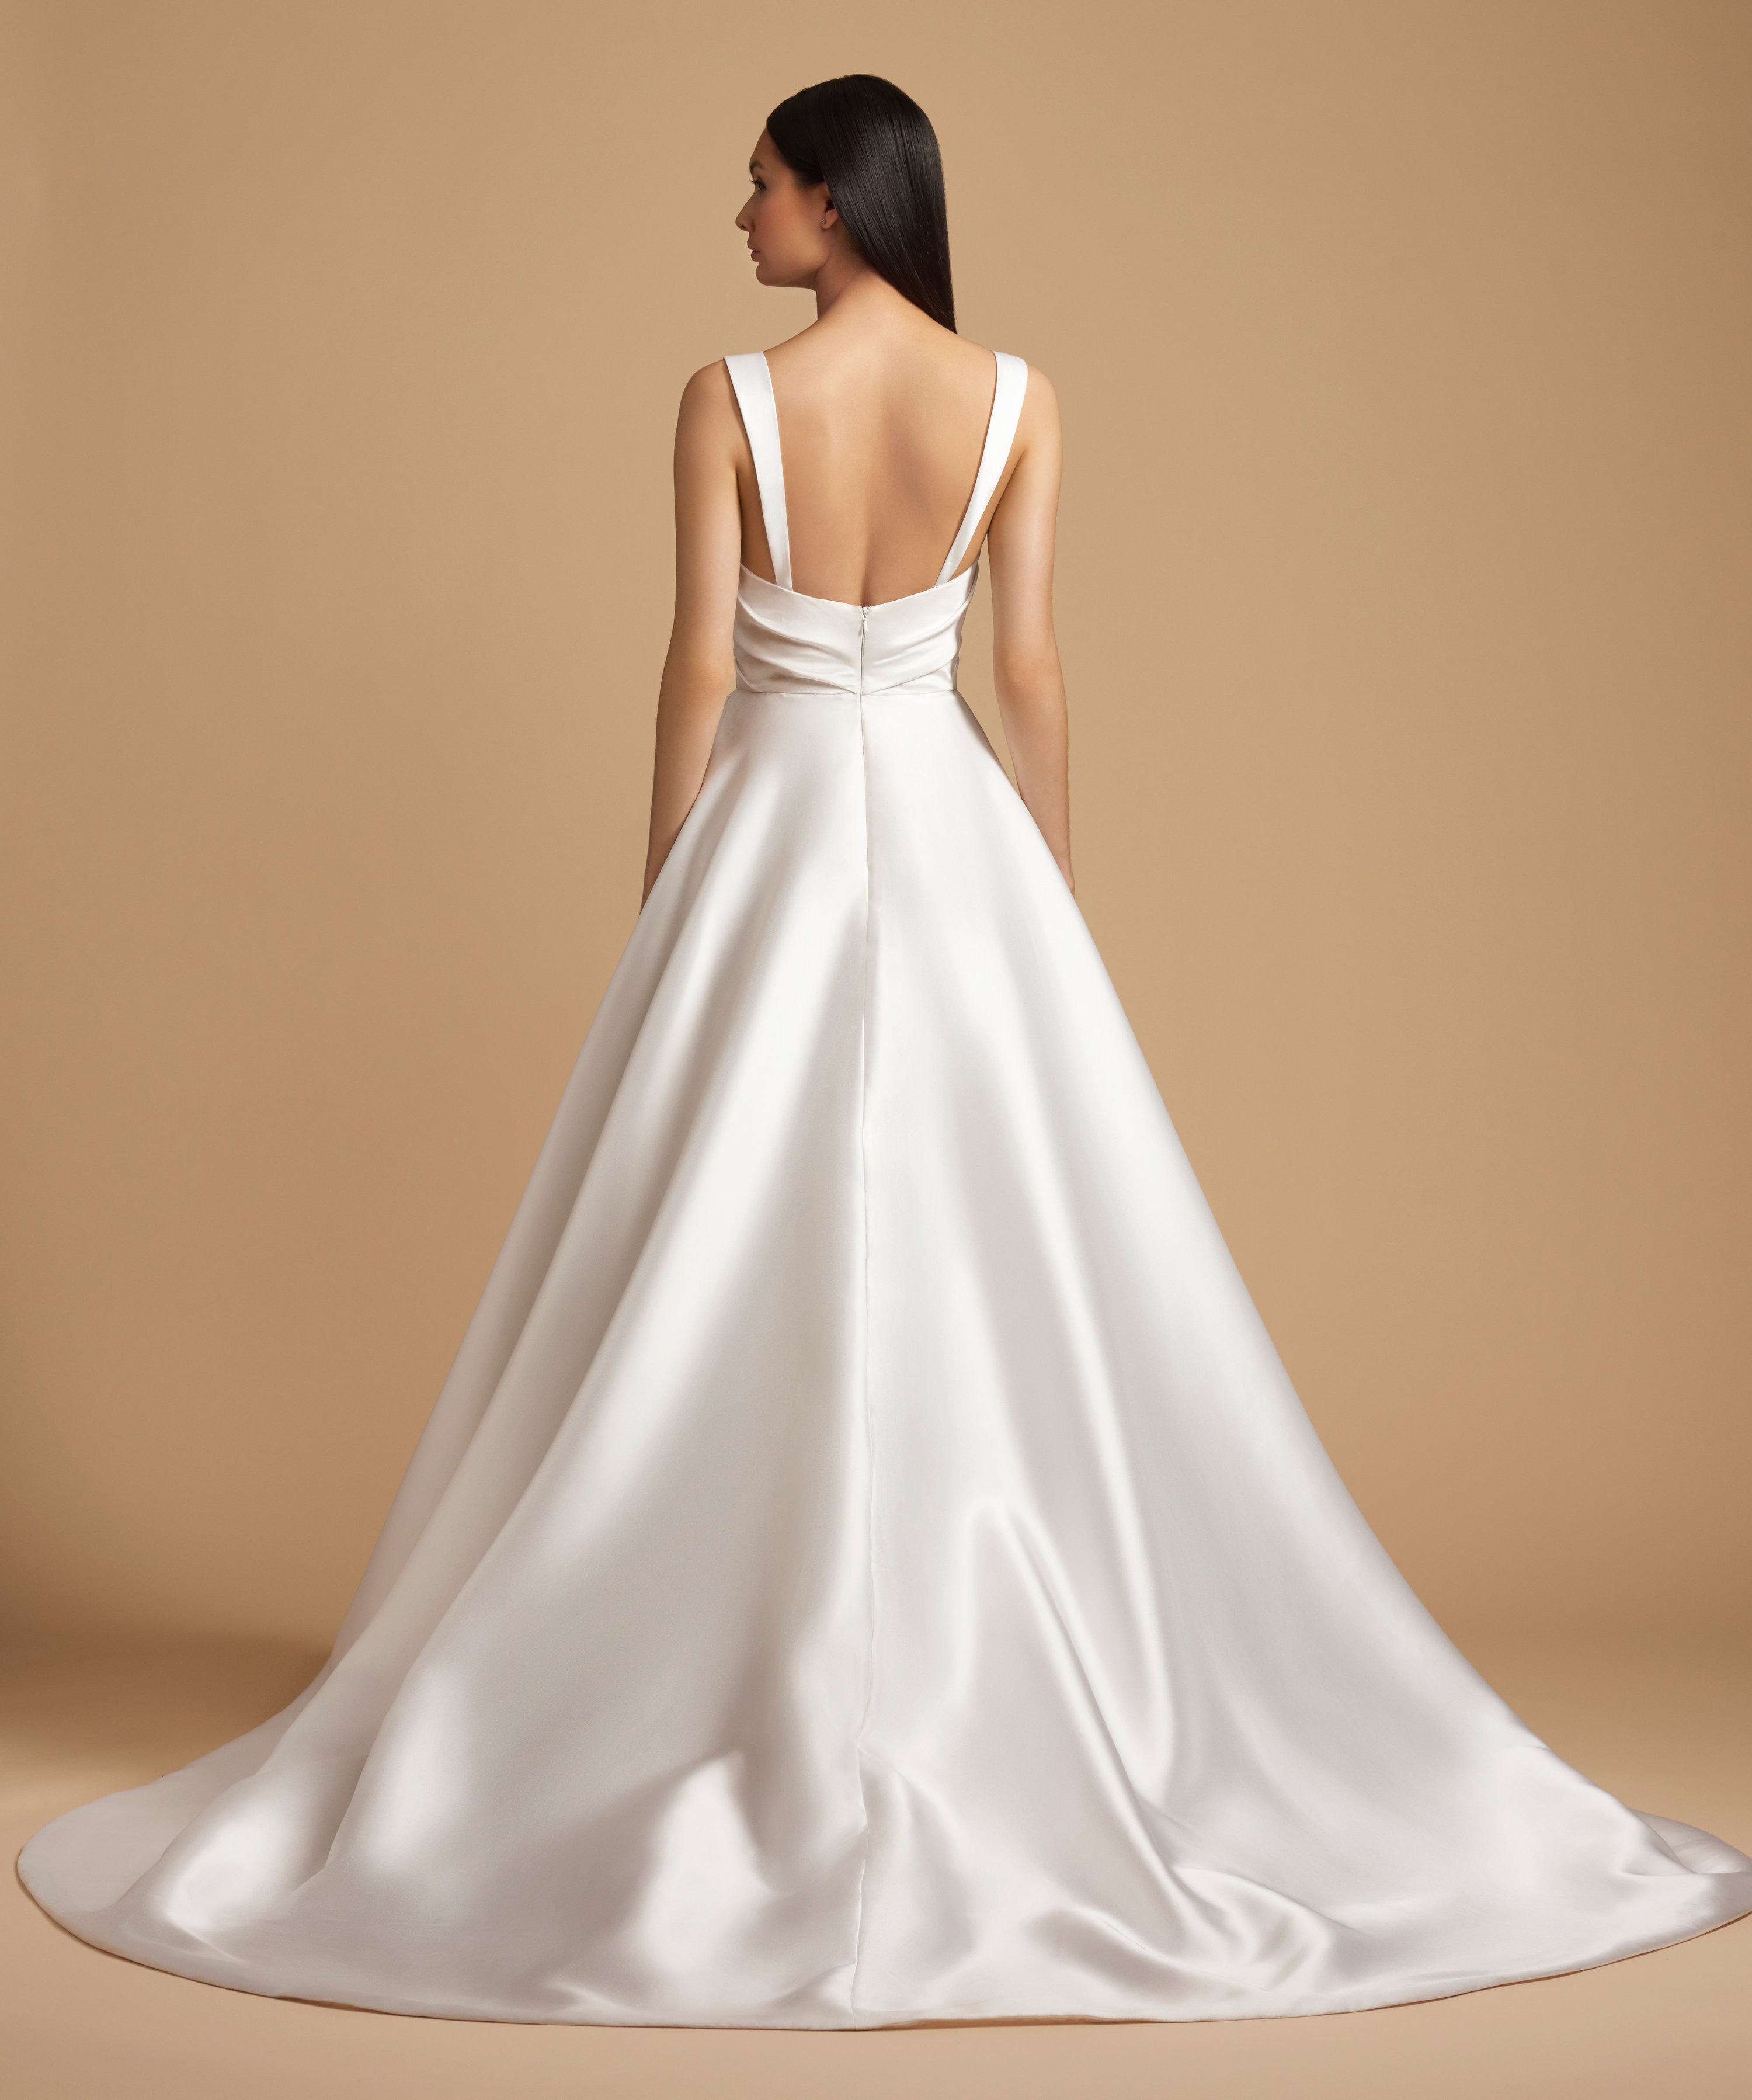 3dc227e4d2 Bridal Gowns and Wedding Dresses by JLM Couture - Style 4850 Emery